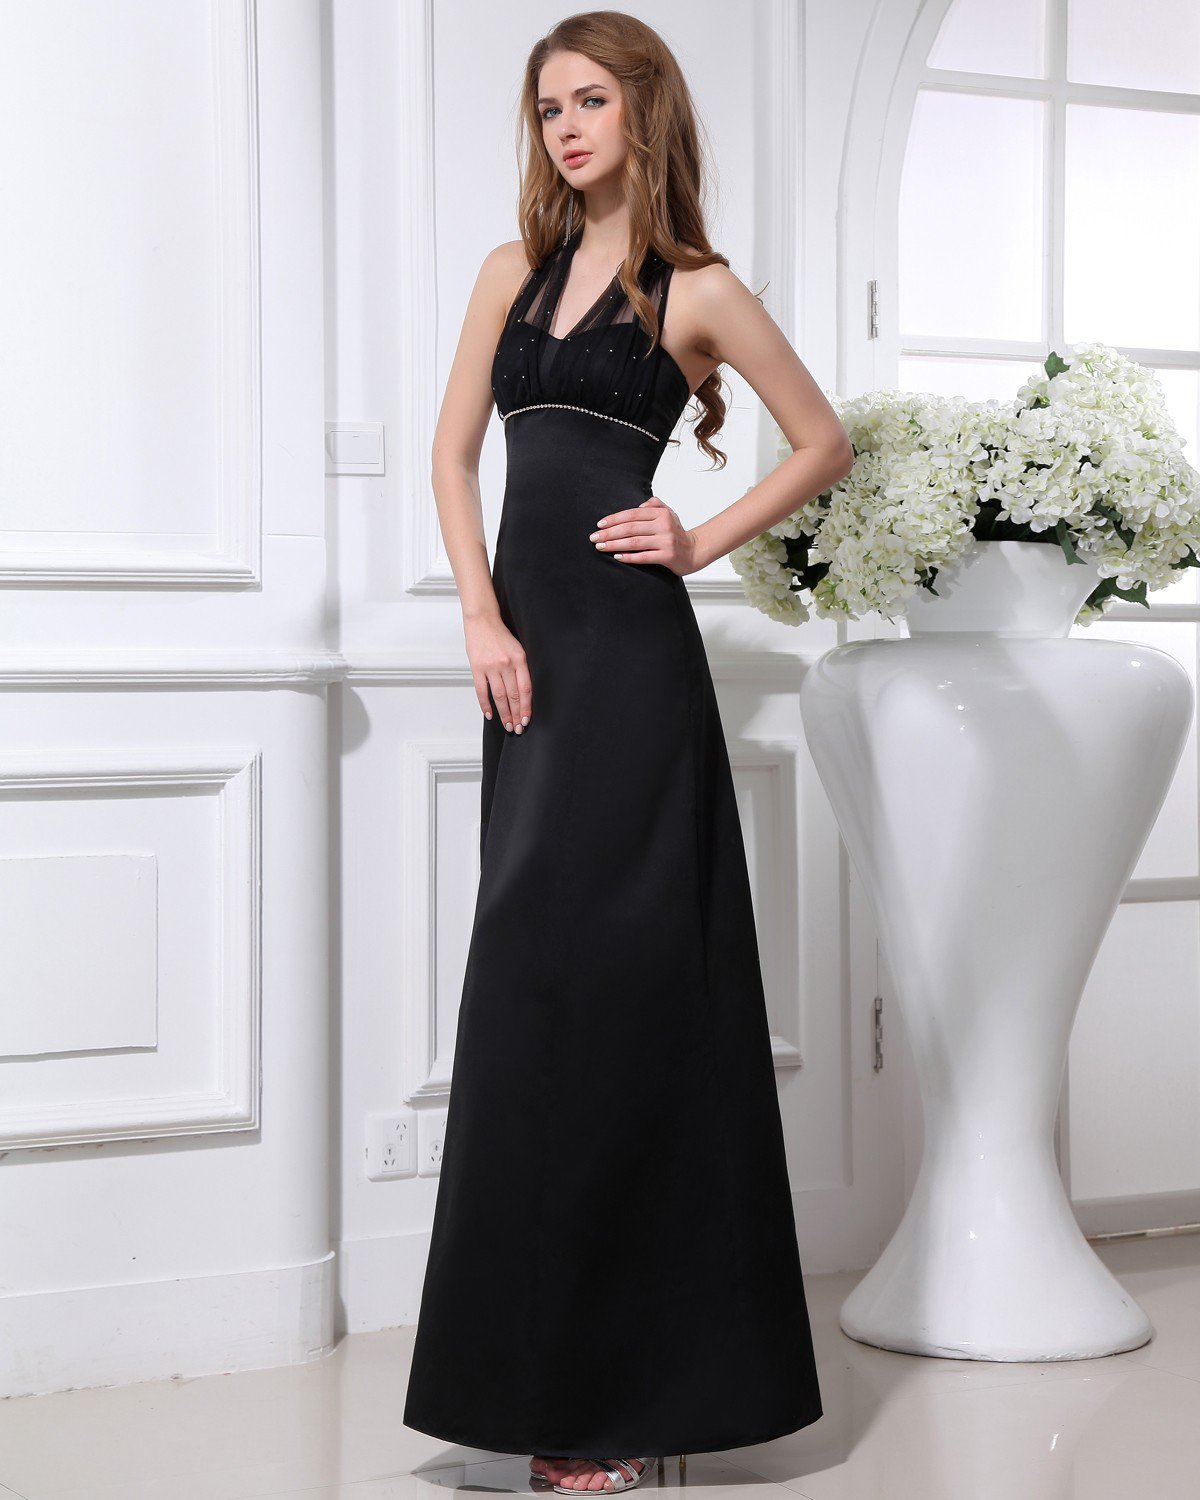 Elegant Satin Yarn Beaded Halter Ankle Length Women Evening Party Dress